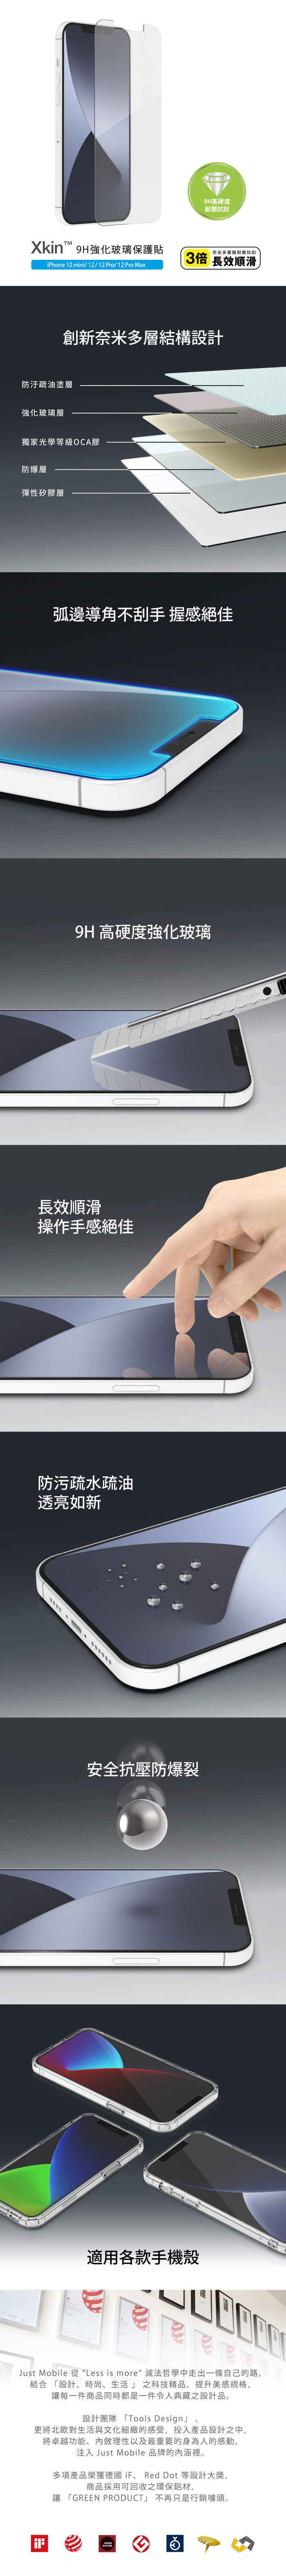 Just Mobile|Xkin™ 9H強化玻璃保護貼- iPhone 12 mini (5.4